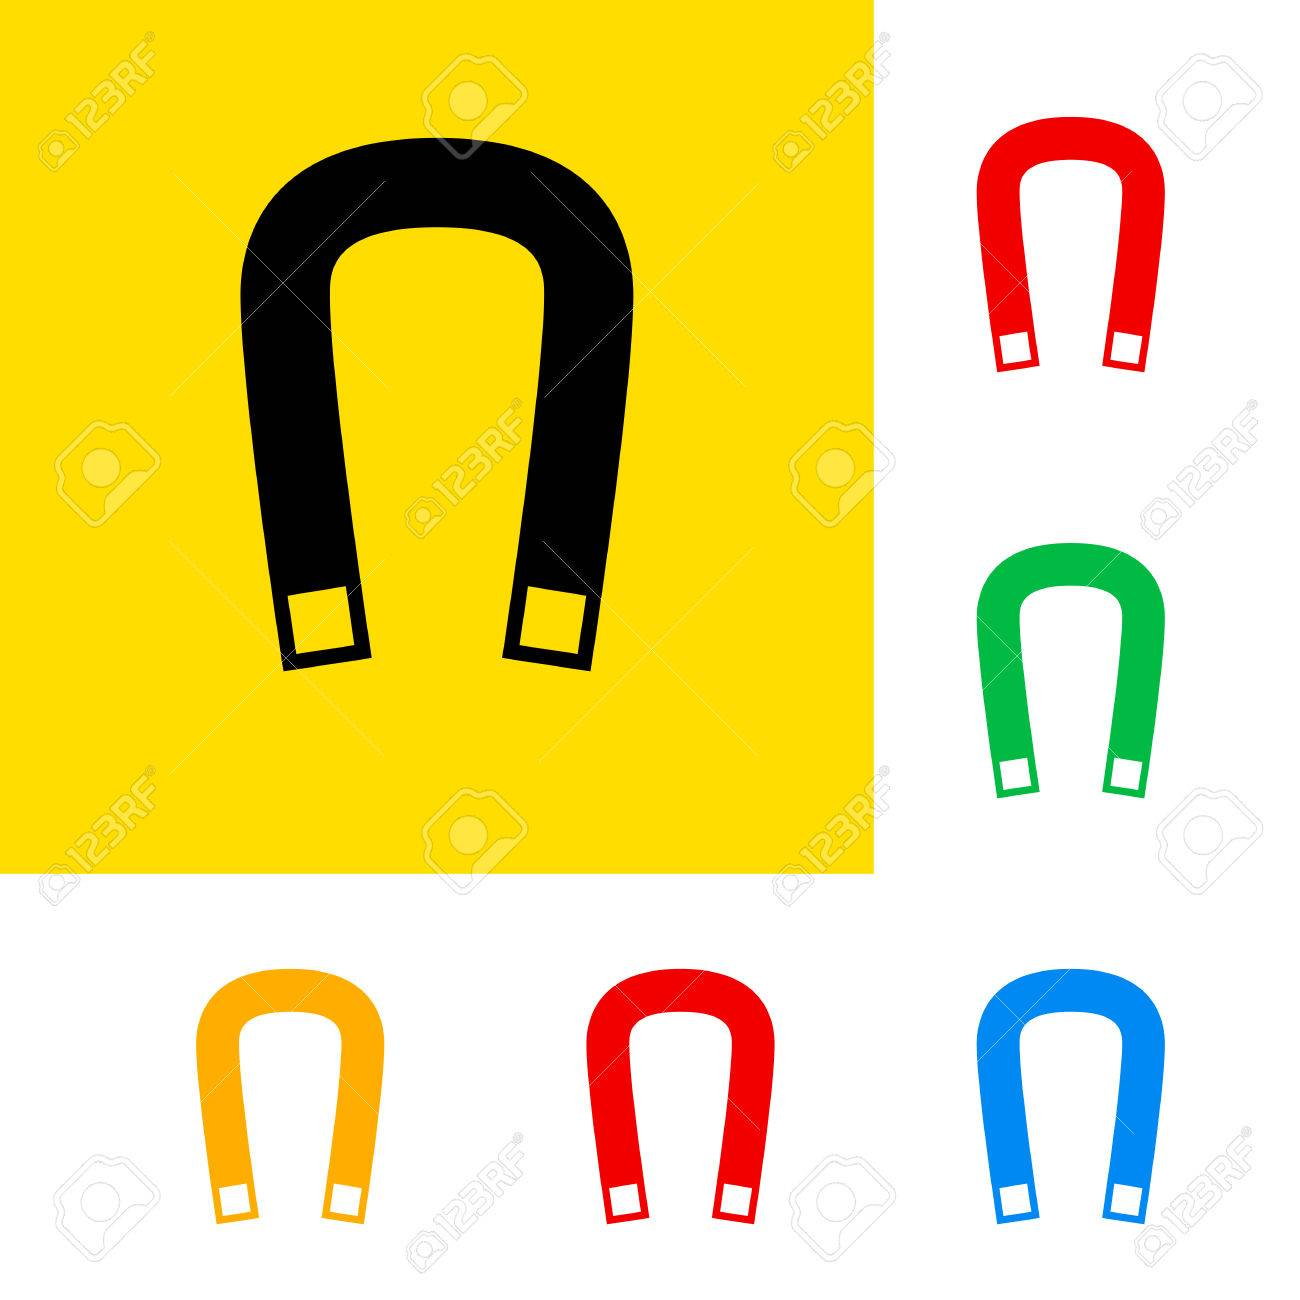 Warning sign of magnetic field with color variations. Stock Vector - 23835825